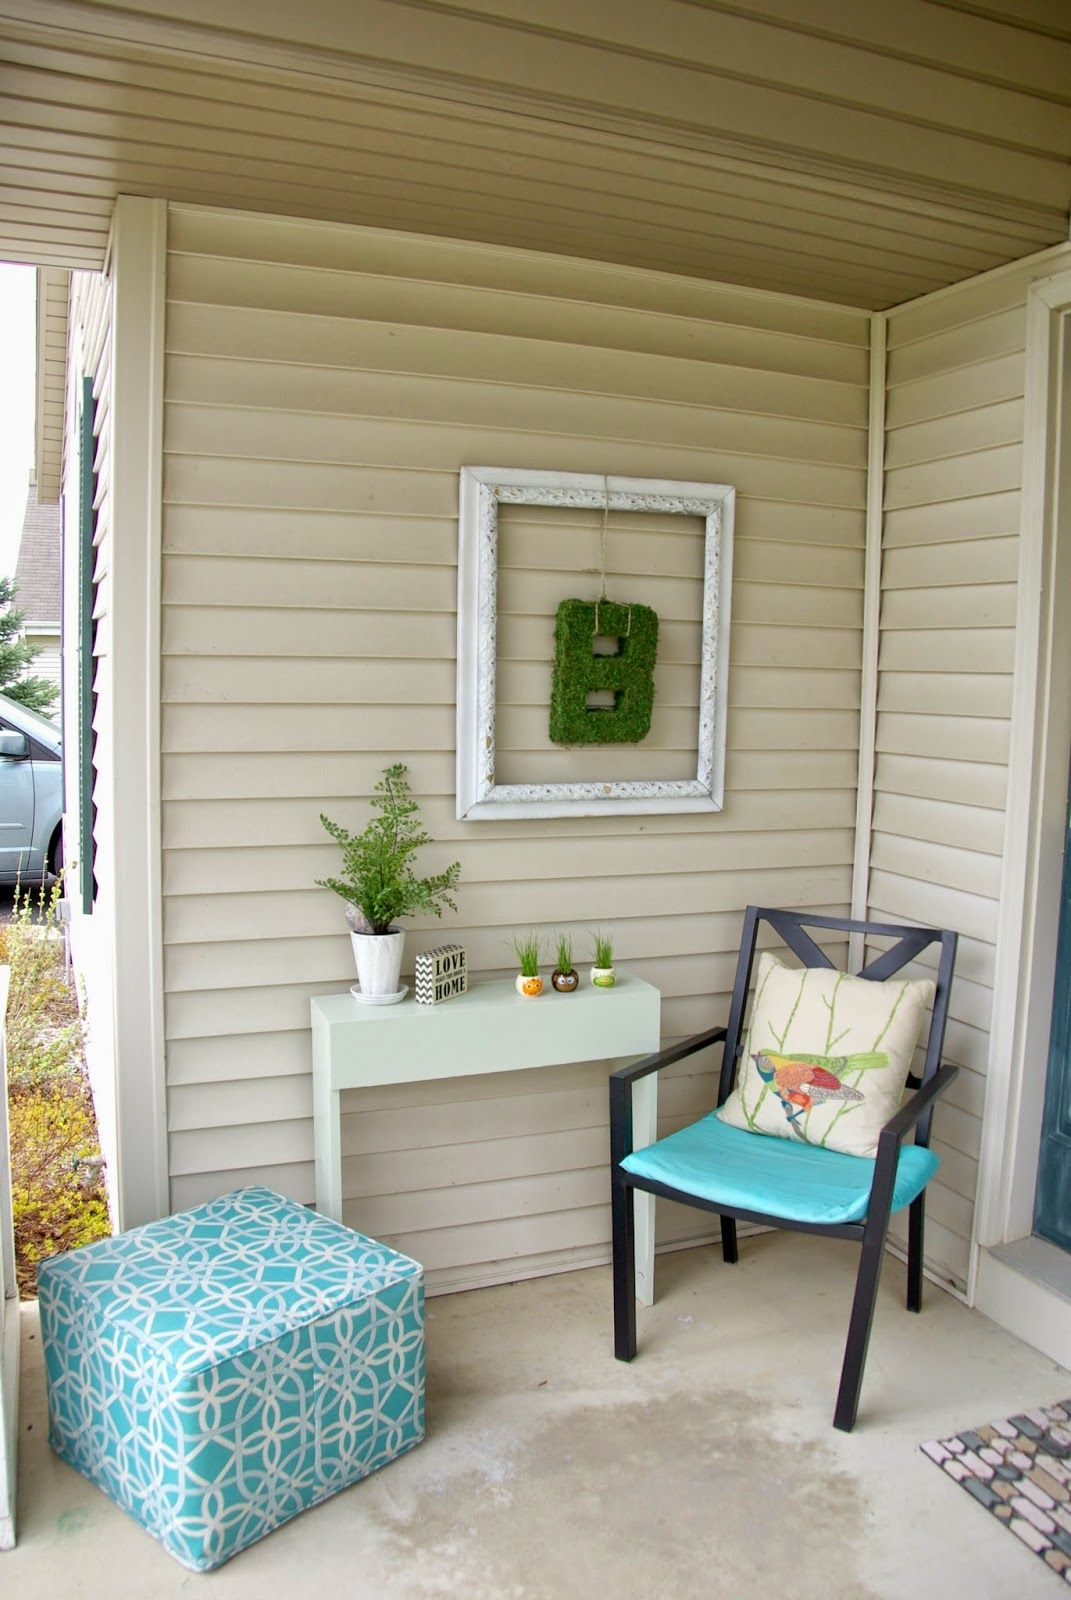 Revamping the front porch summer porch ideas summer for Outdoor summer decorating ideas